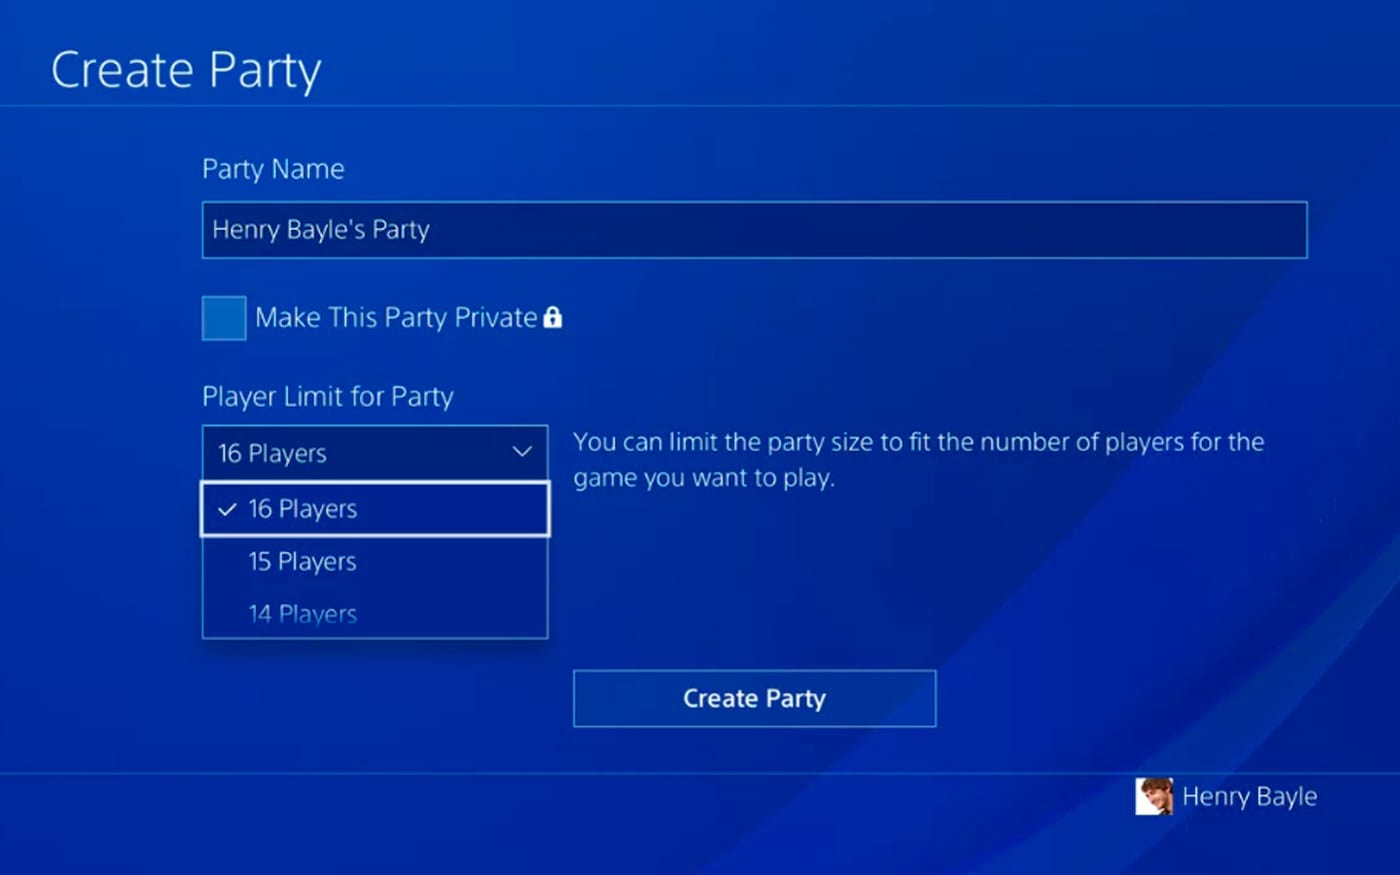 PS4: PlayStation Preview Program trará aumento de participantes nas partys e melhorias de áudio